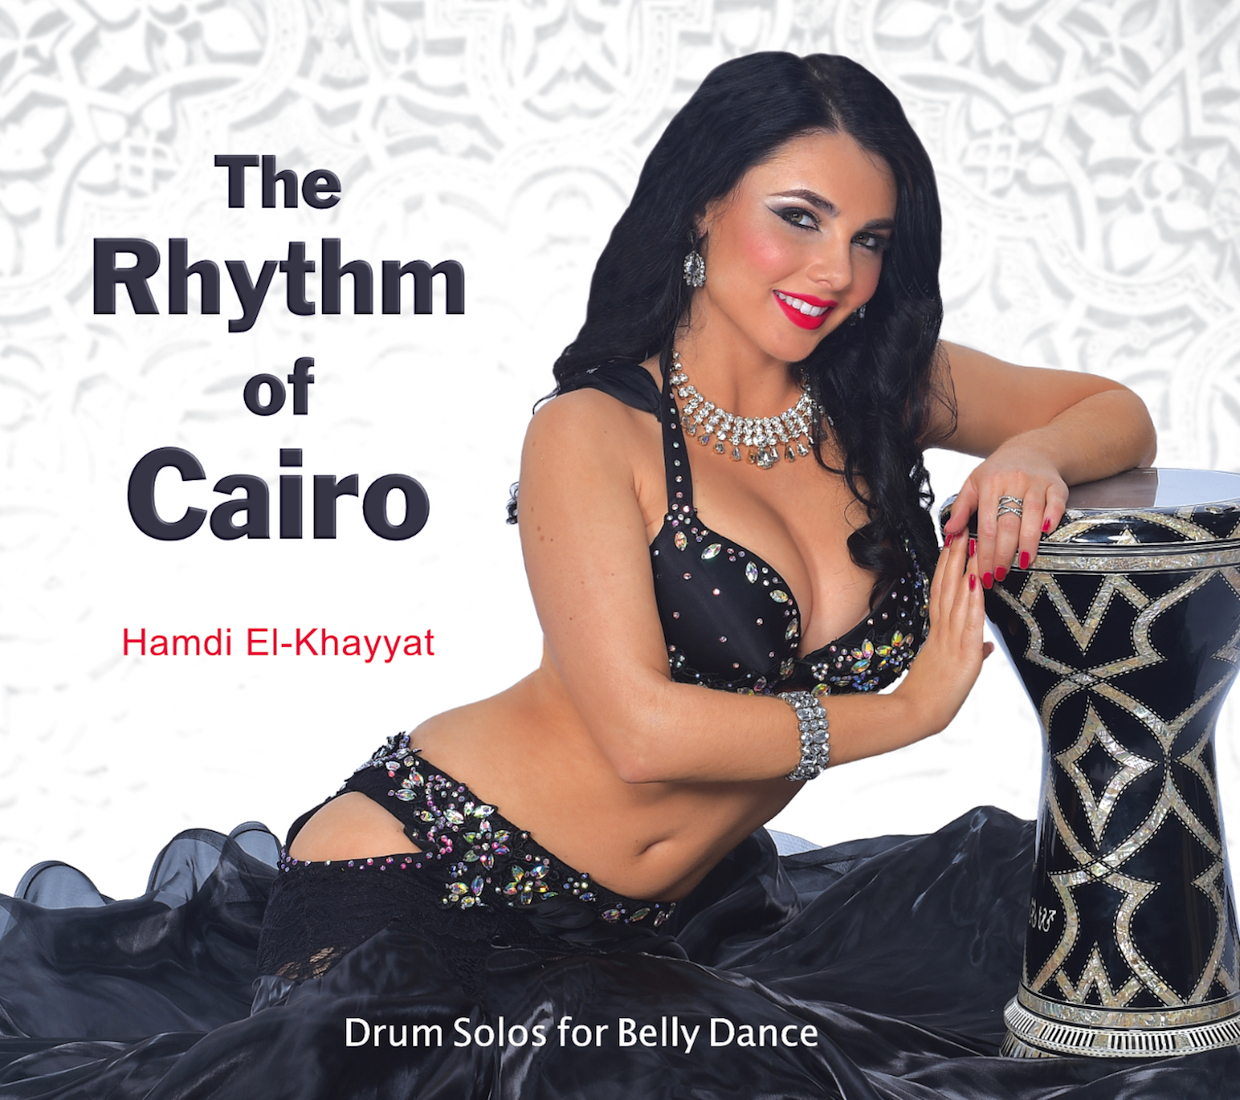 The Rhythm of Cairo: Drum Solos for Belly Dance by Hamdi El-Khayyat - CD